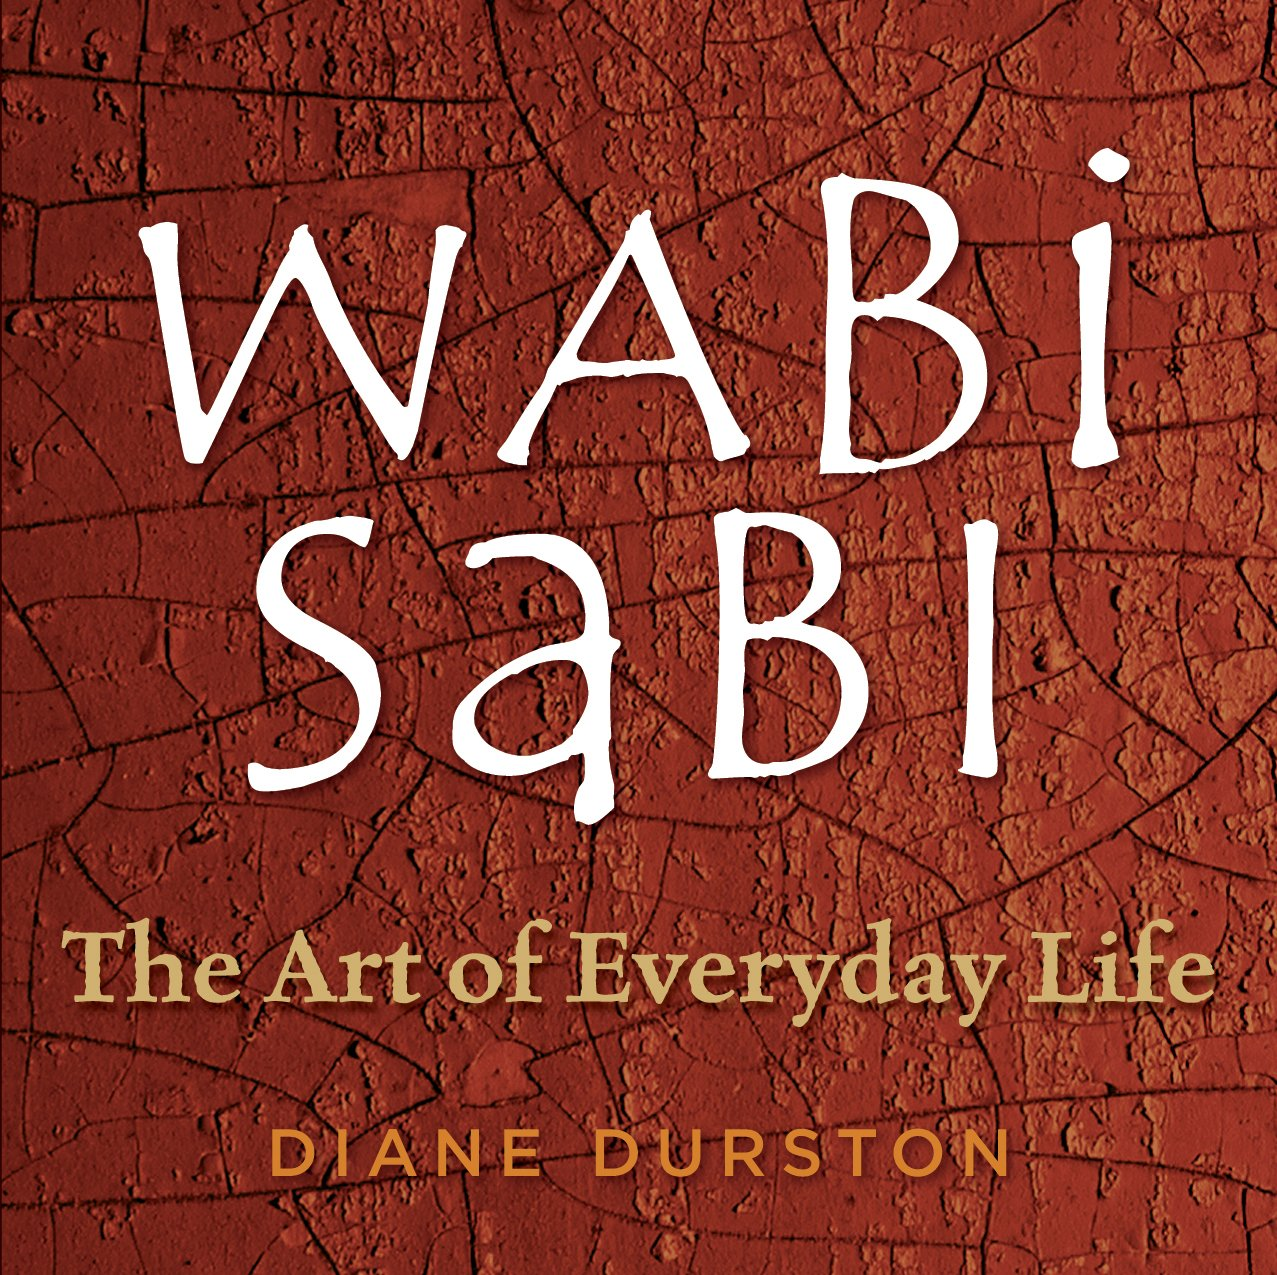 Wabi Sabi: The Art of Everyday Life